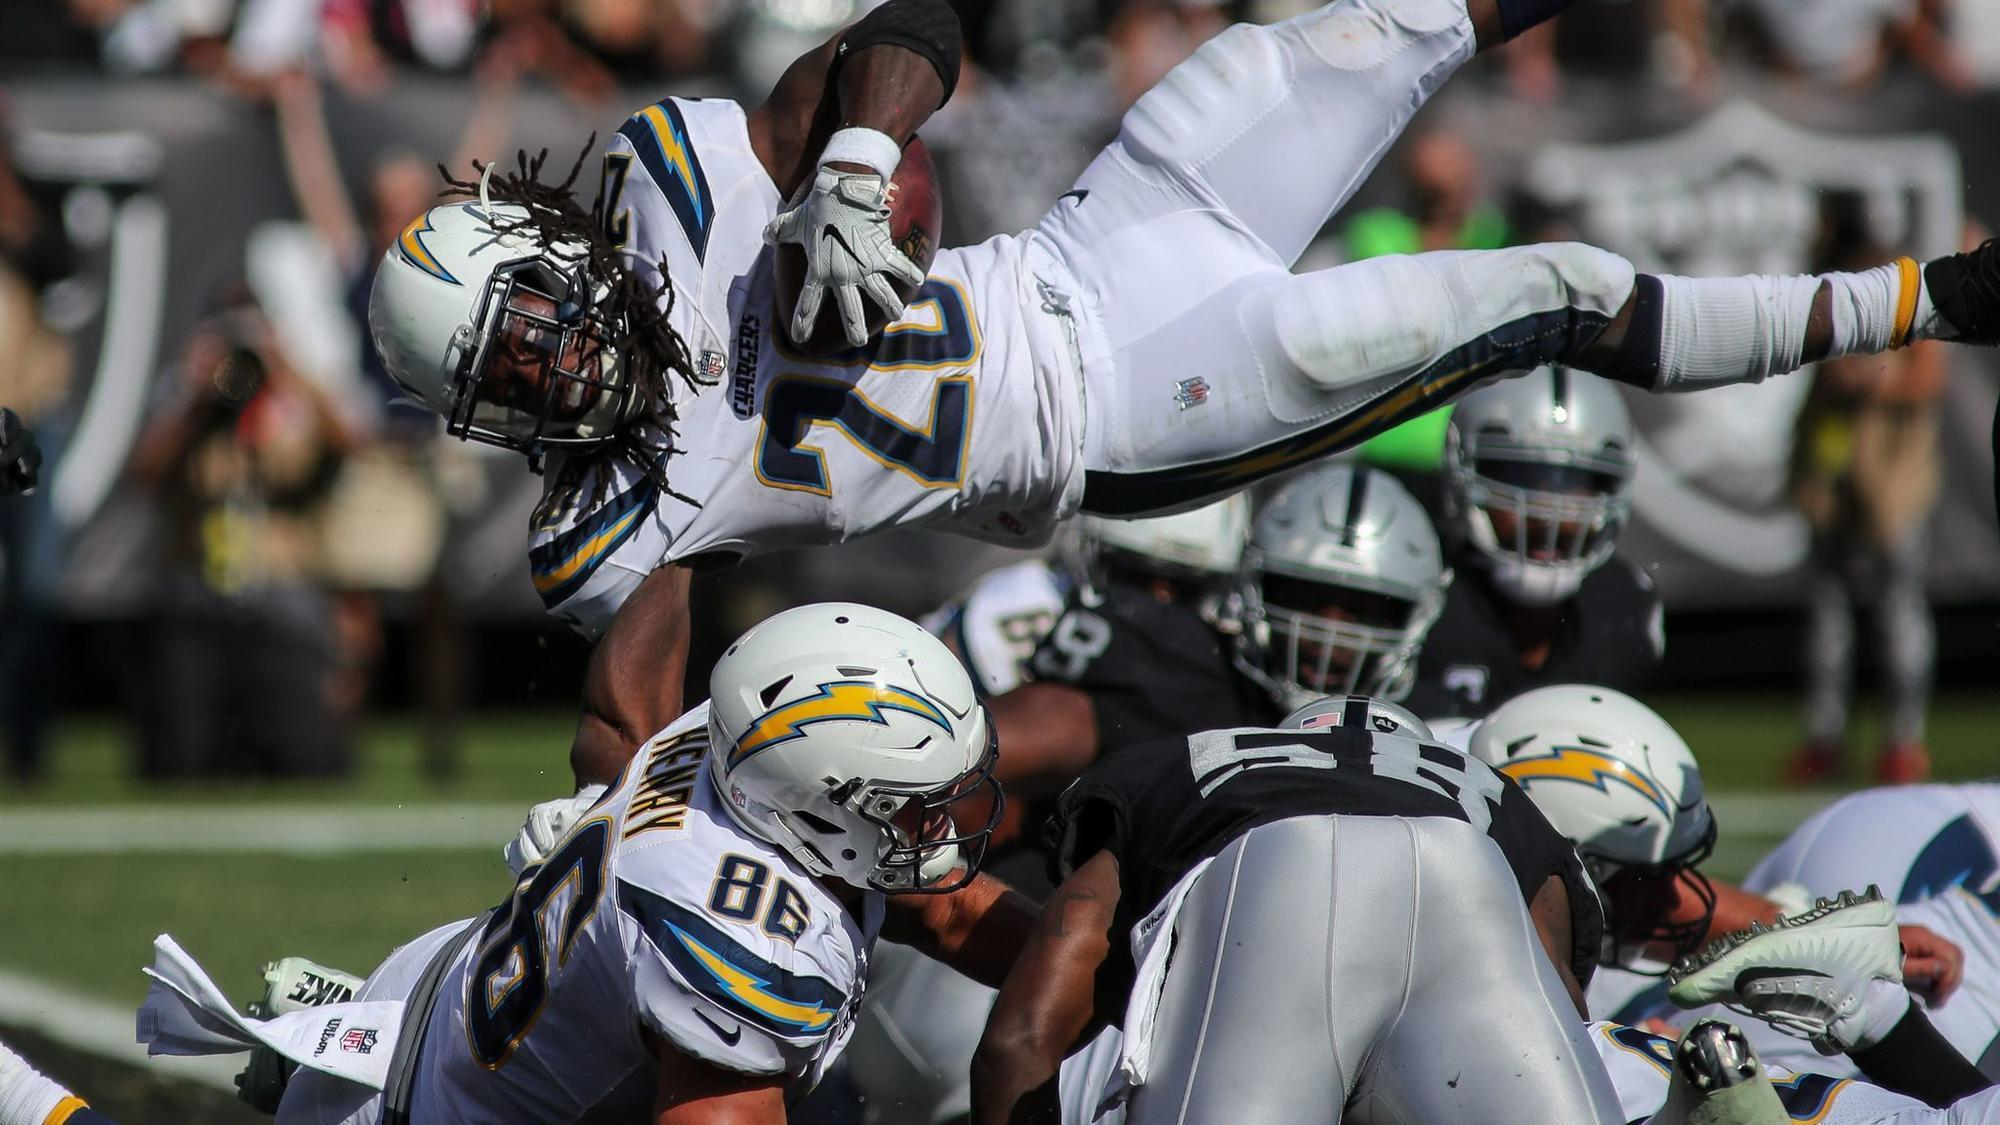 Sd-sp-chargers-five-reasons-oakland-raiders-will-beat-los-angeles-chargers-20171229